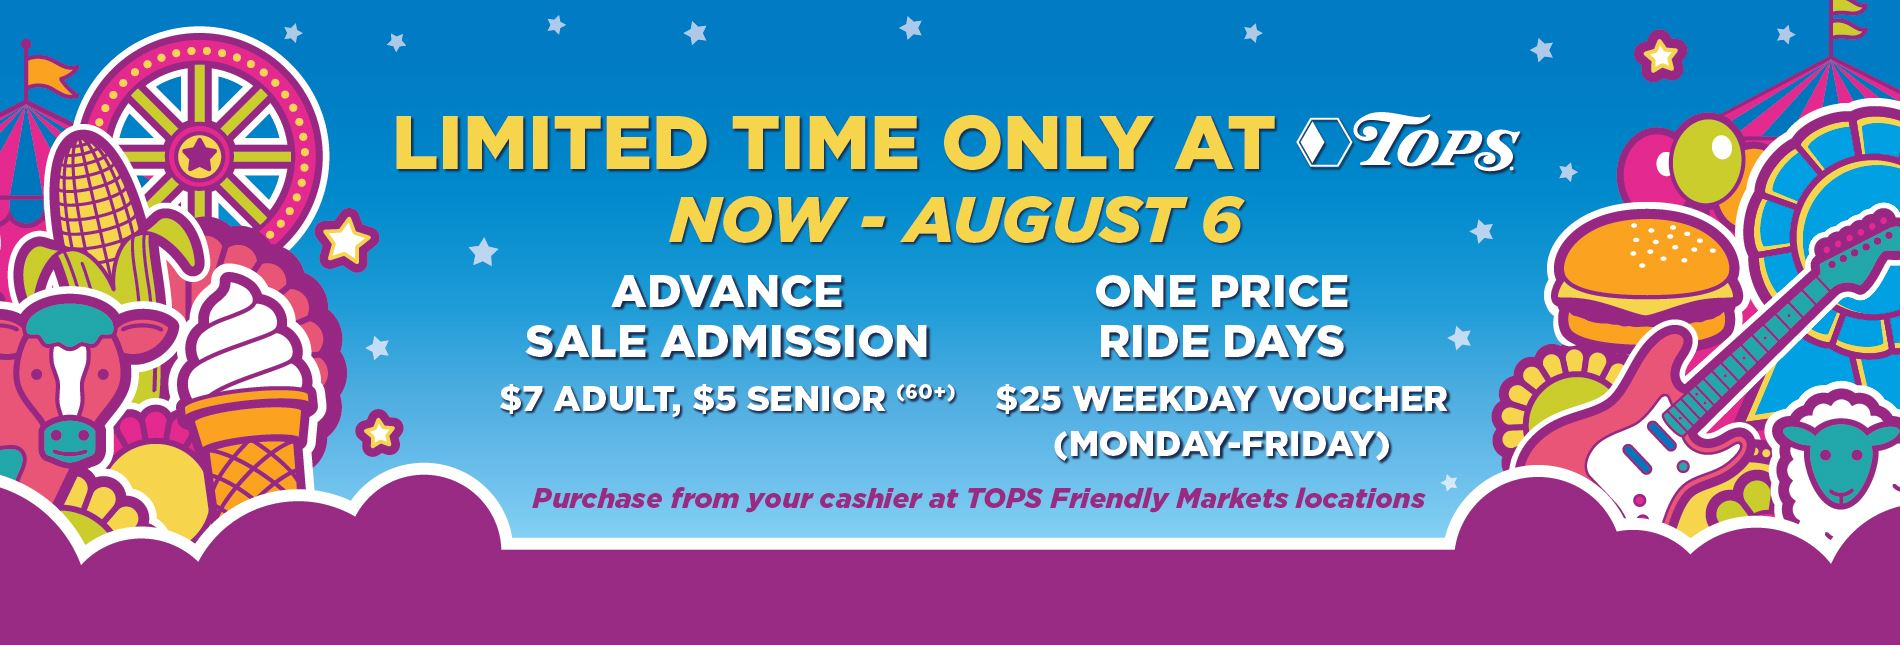 Advance Sale Admission Tickets and One Price Ride Days $25 Weekday Voucher (Mon-Fri) Available at TOPS from July 1 - August 6